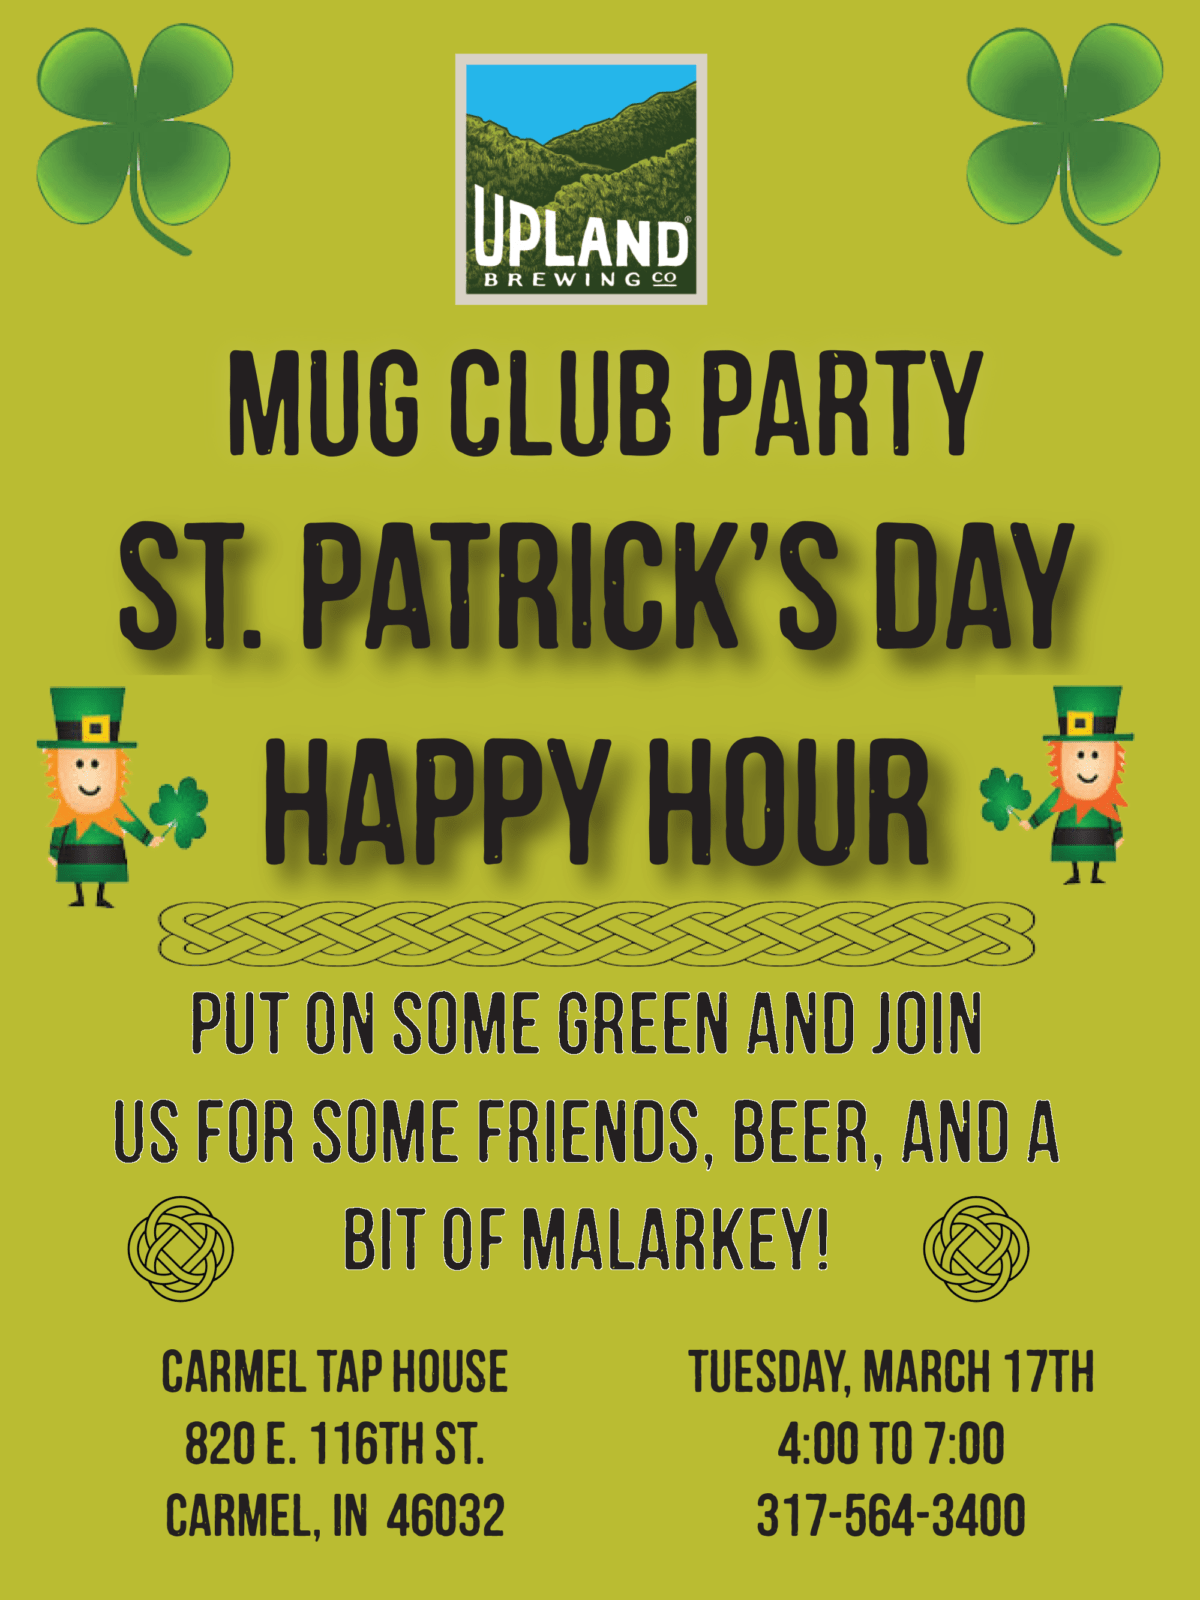 st. paddy's day mug club party - upland brewing co.